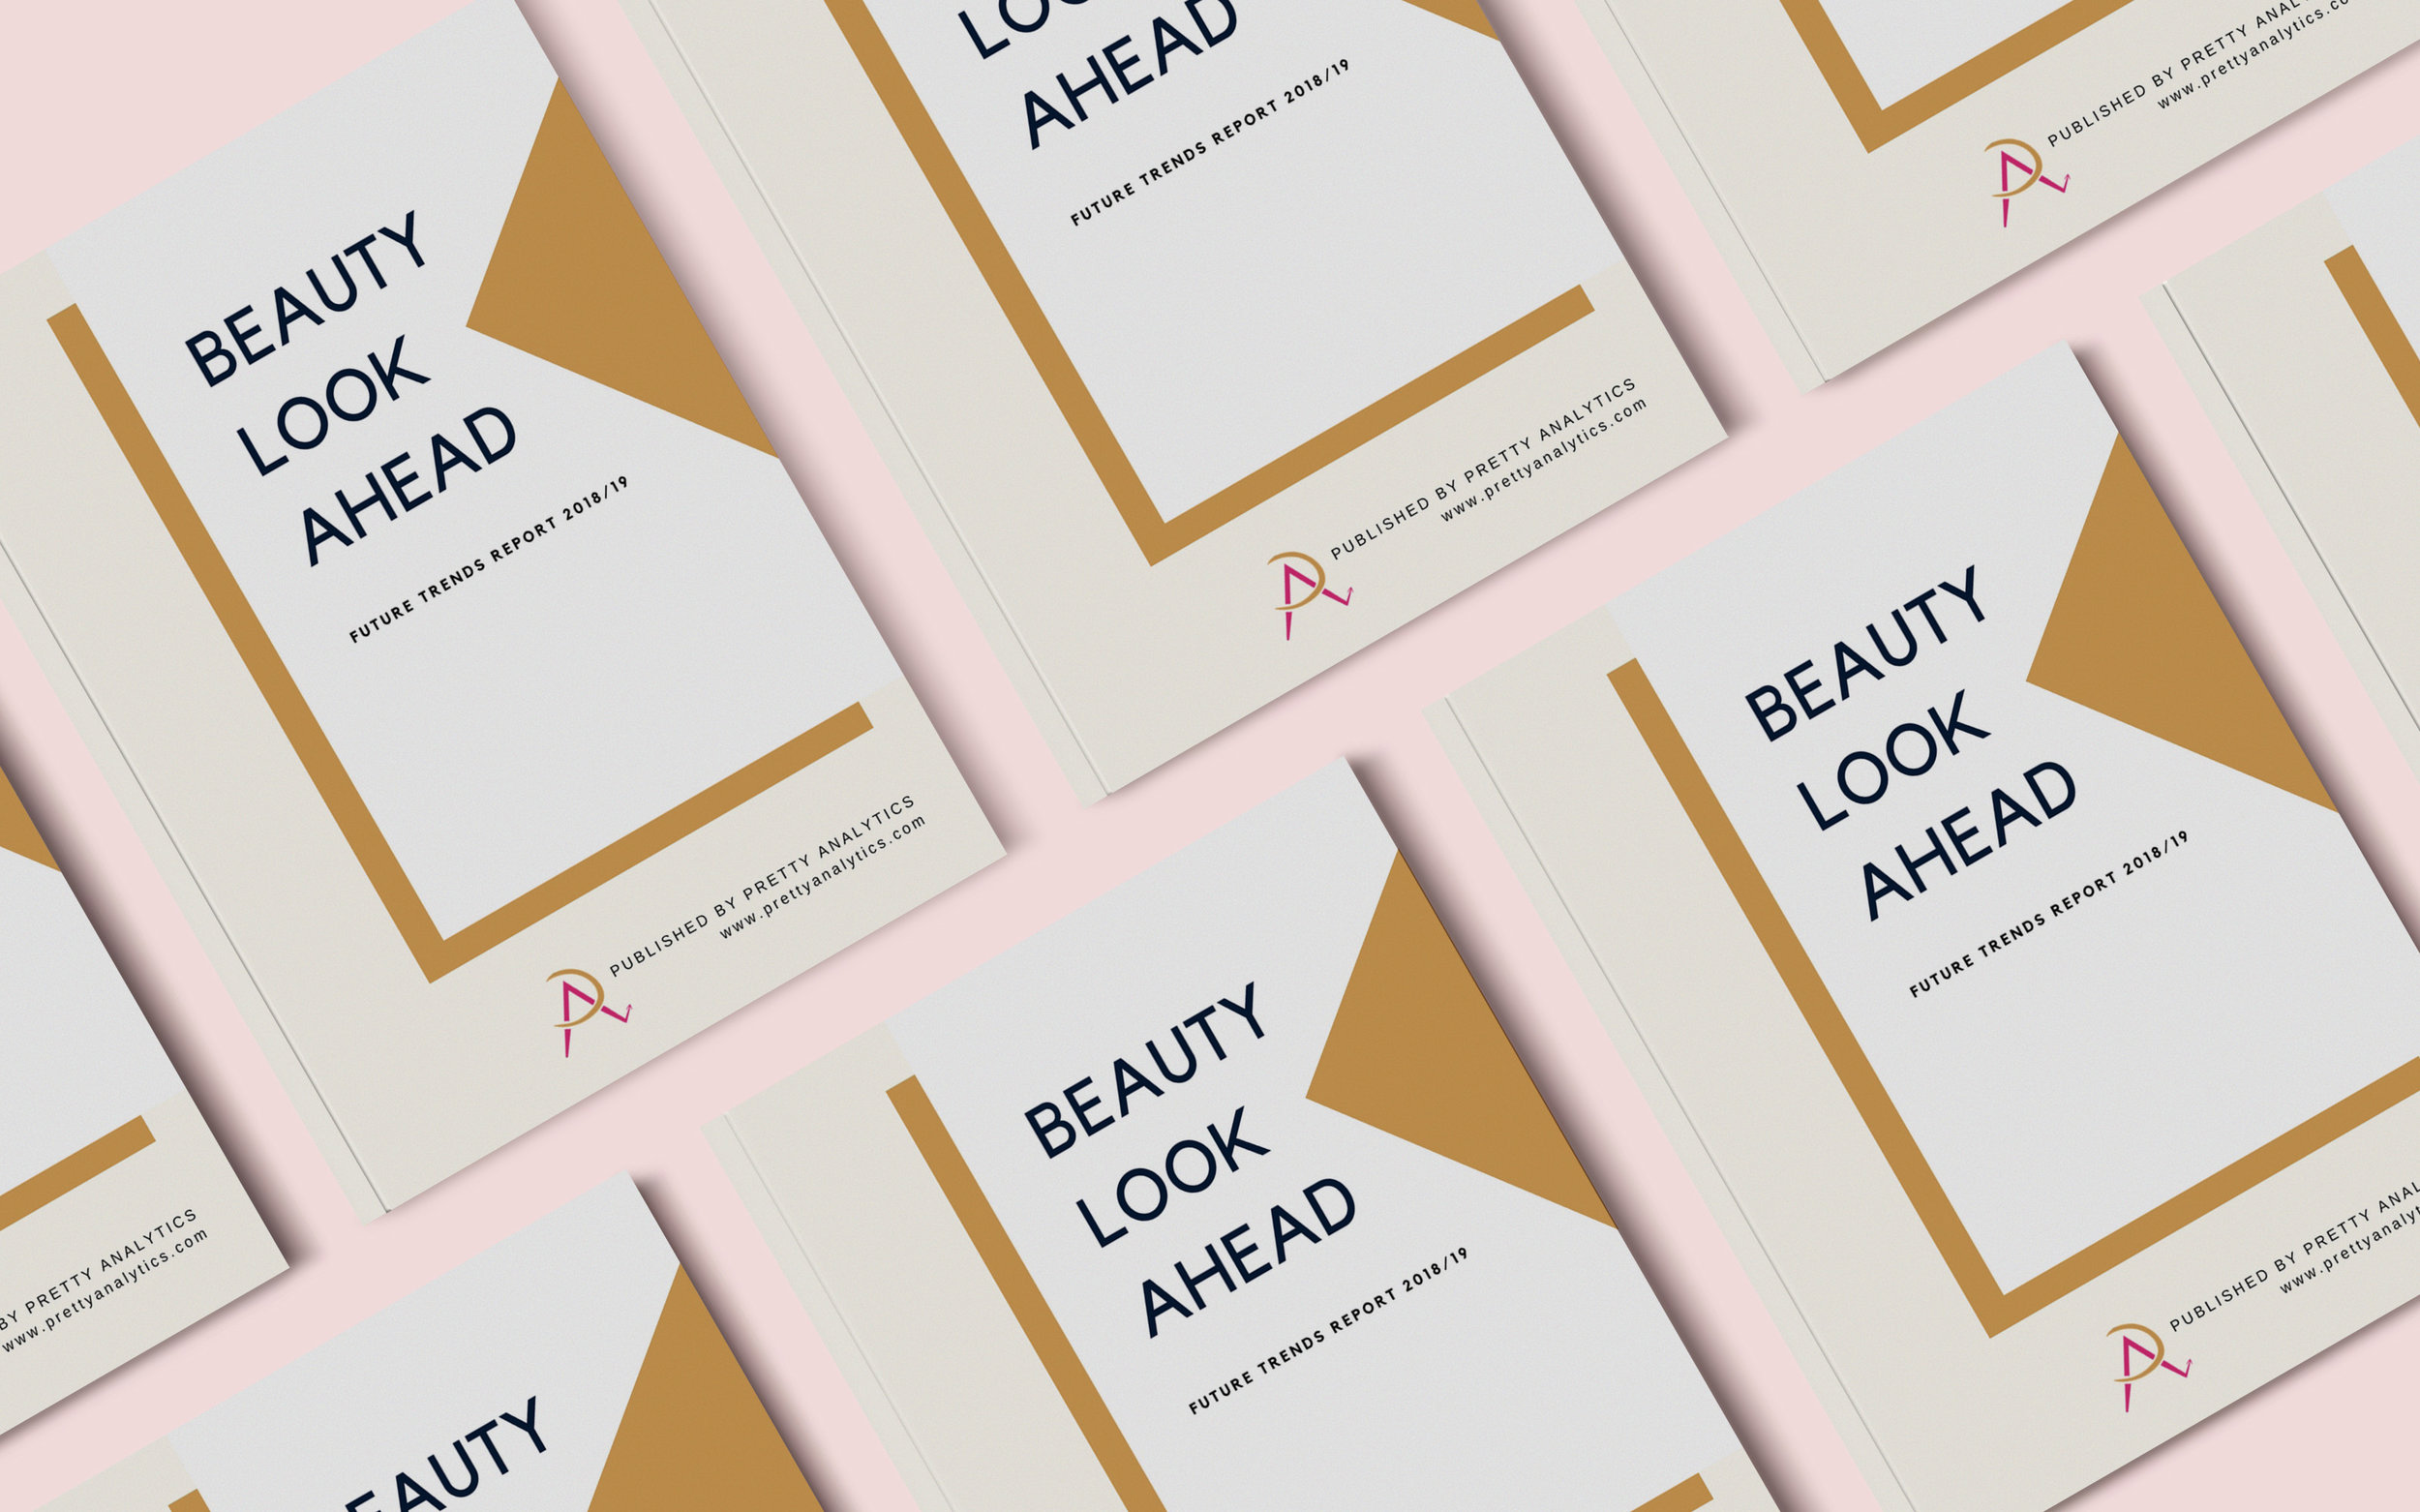 - BEAUTY LOOK AHEAD - a future trends report